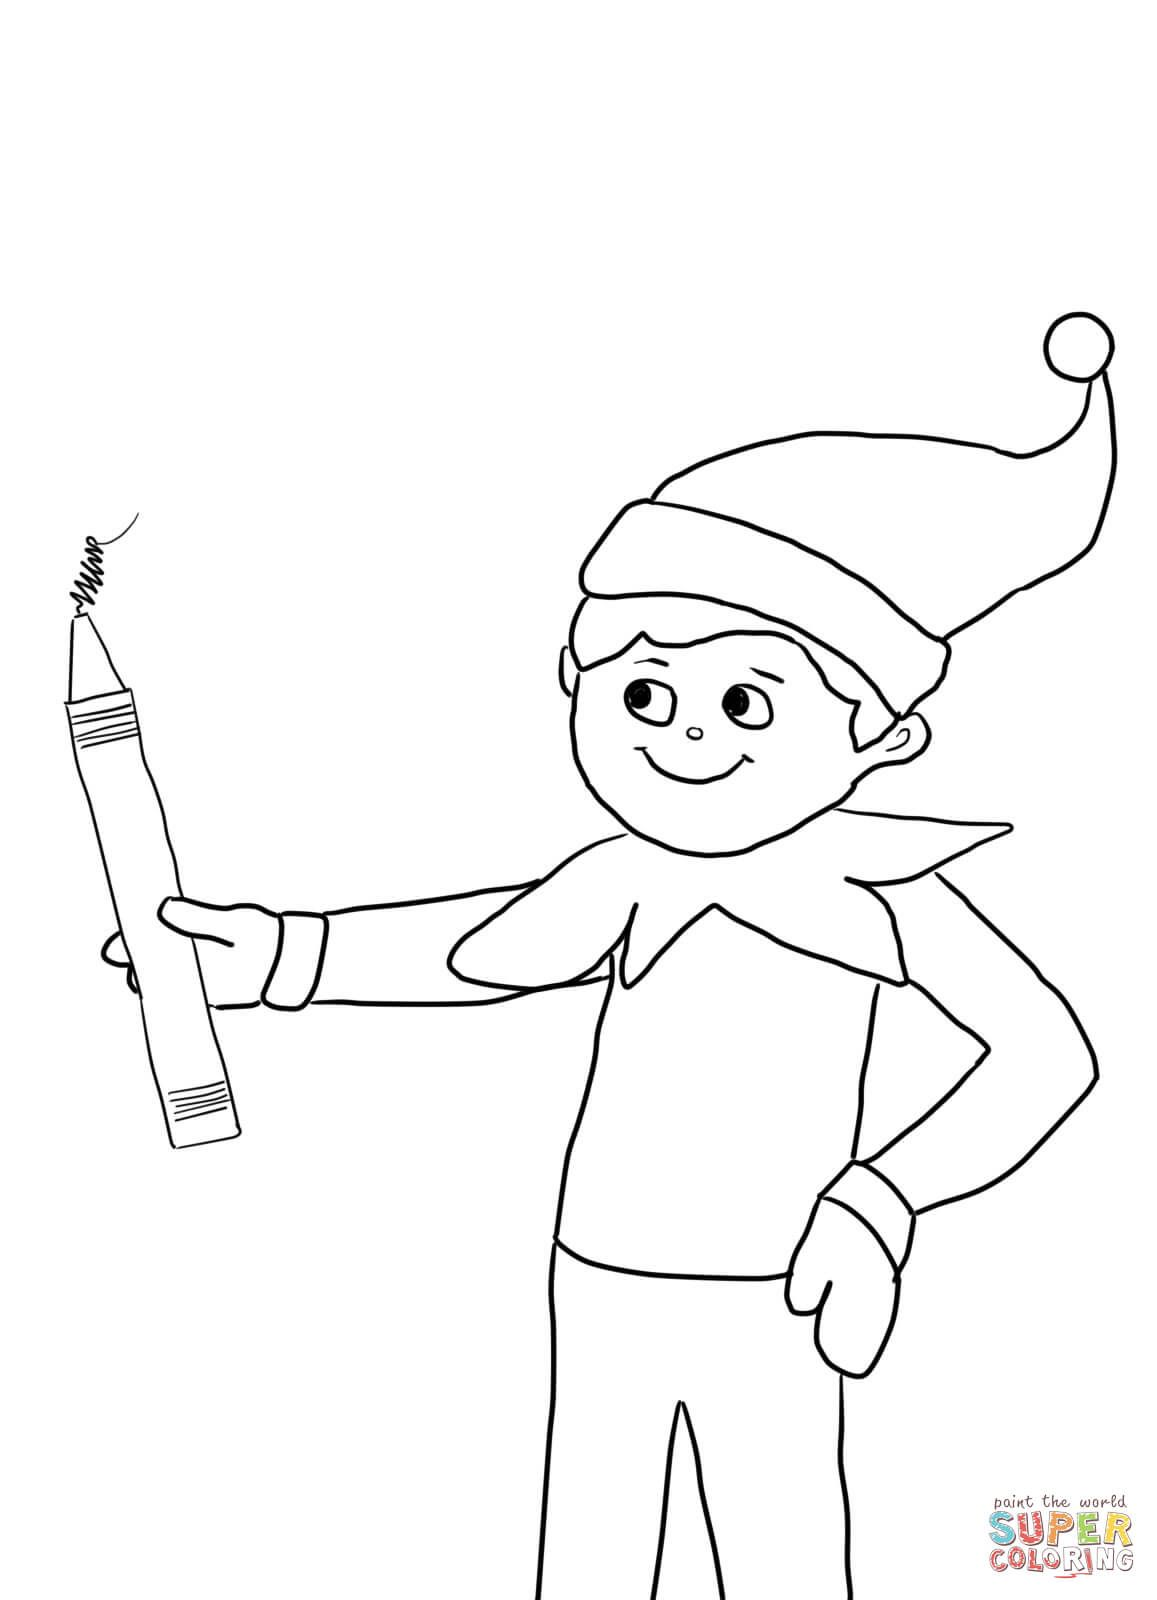 Elf On The Shelf With Pencil Super Coloring Flag Coloring Pages Bear Coloring Pages Coloring Books